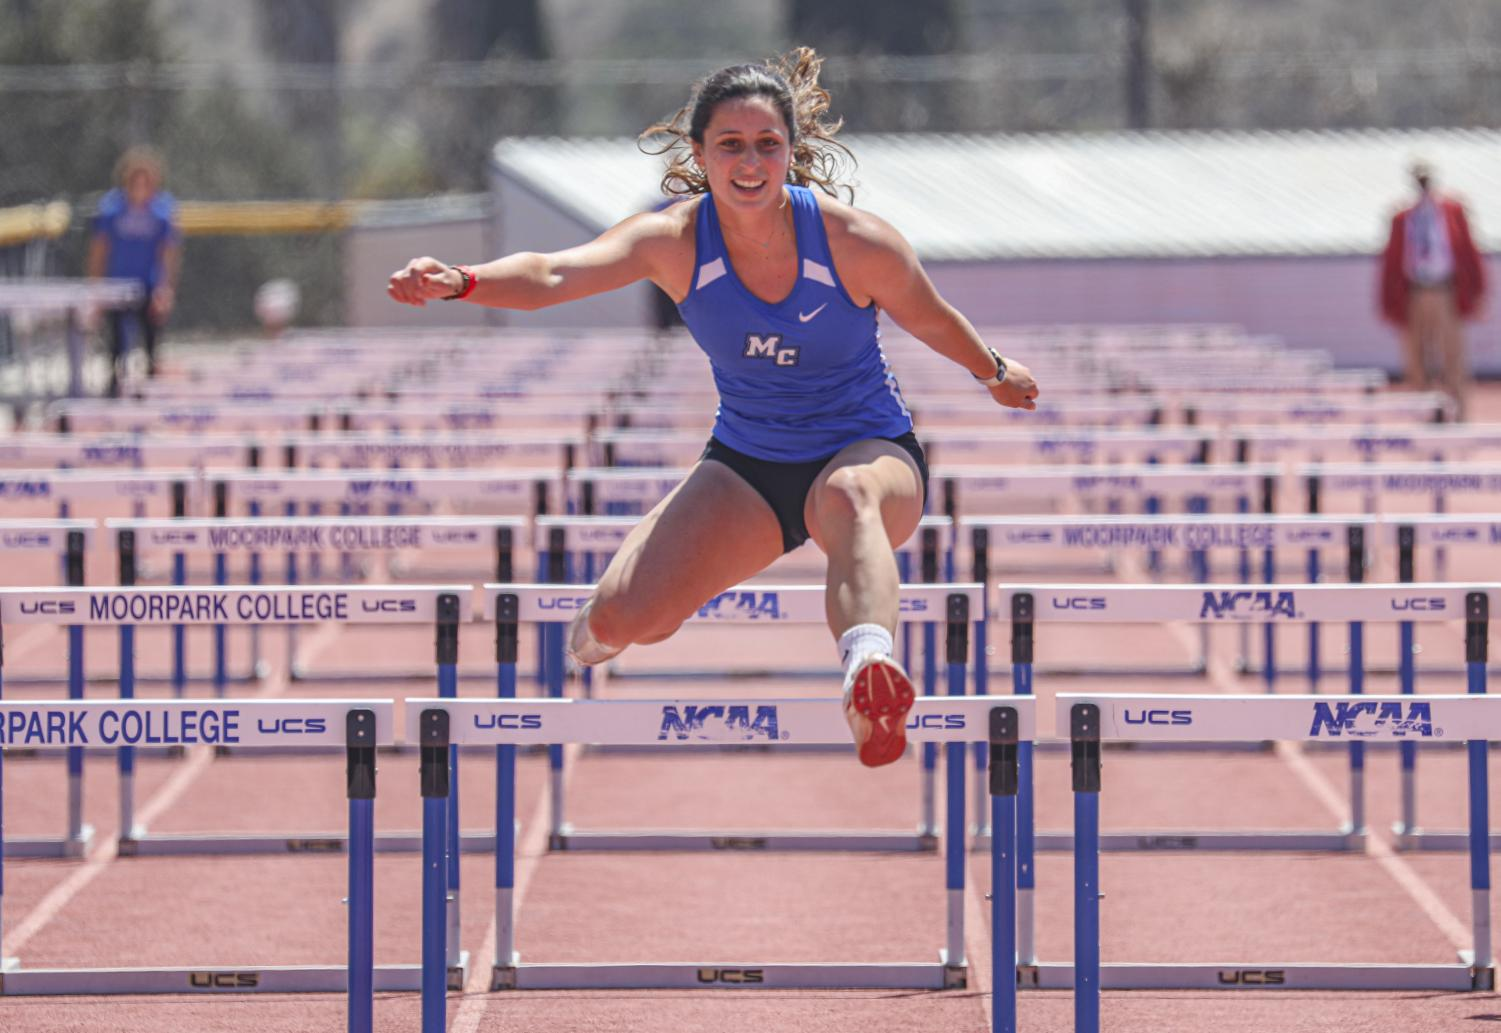 Annie Doherty jumps over the last hurdle during the 100 meter hurdles race